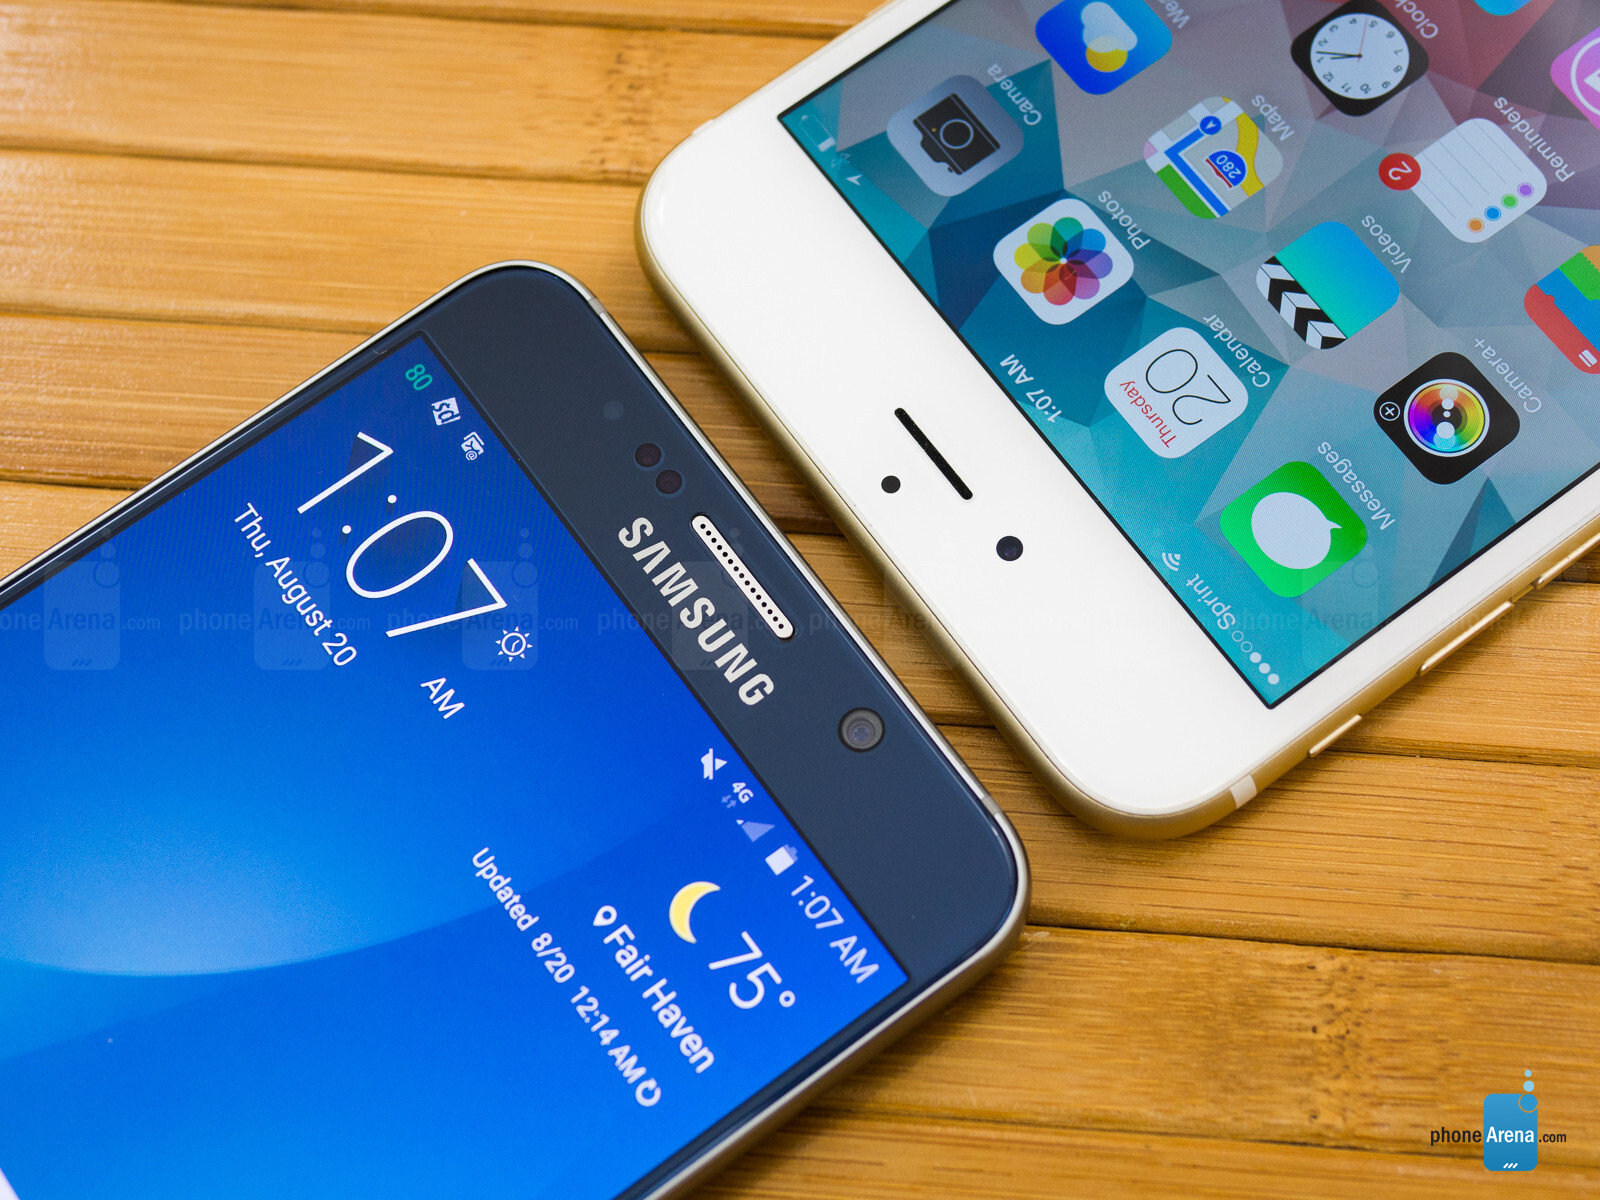 Samsung Galaxy Note5 vs Apple iPhone 6 Plus - PhoneArena